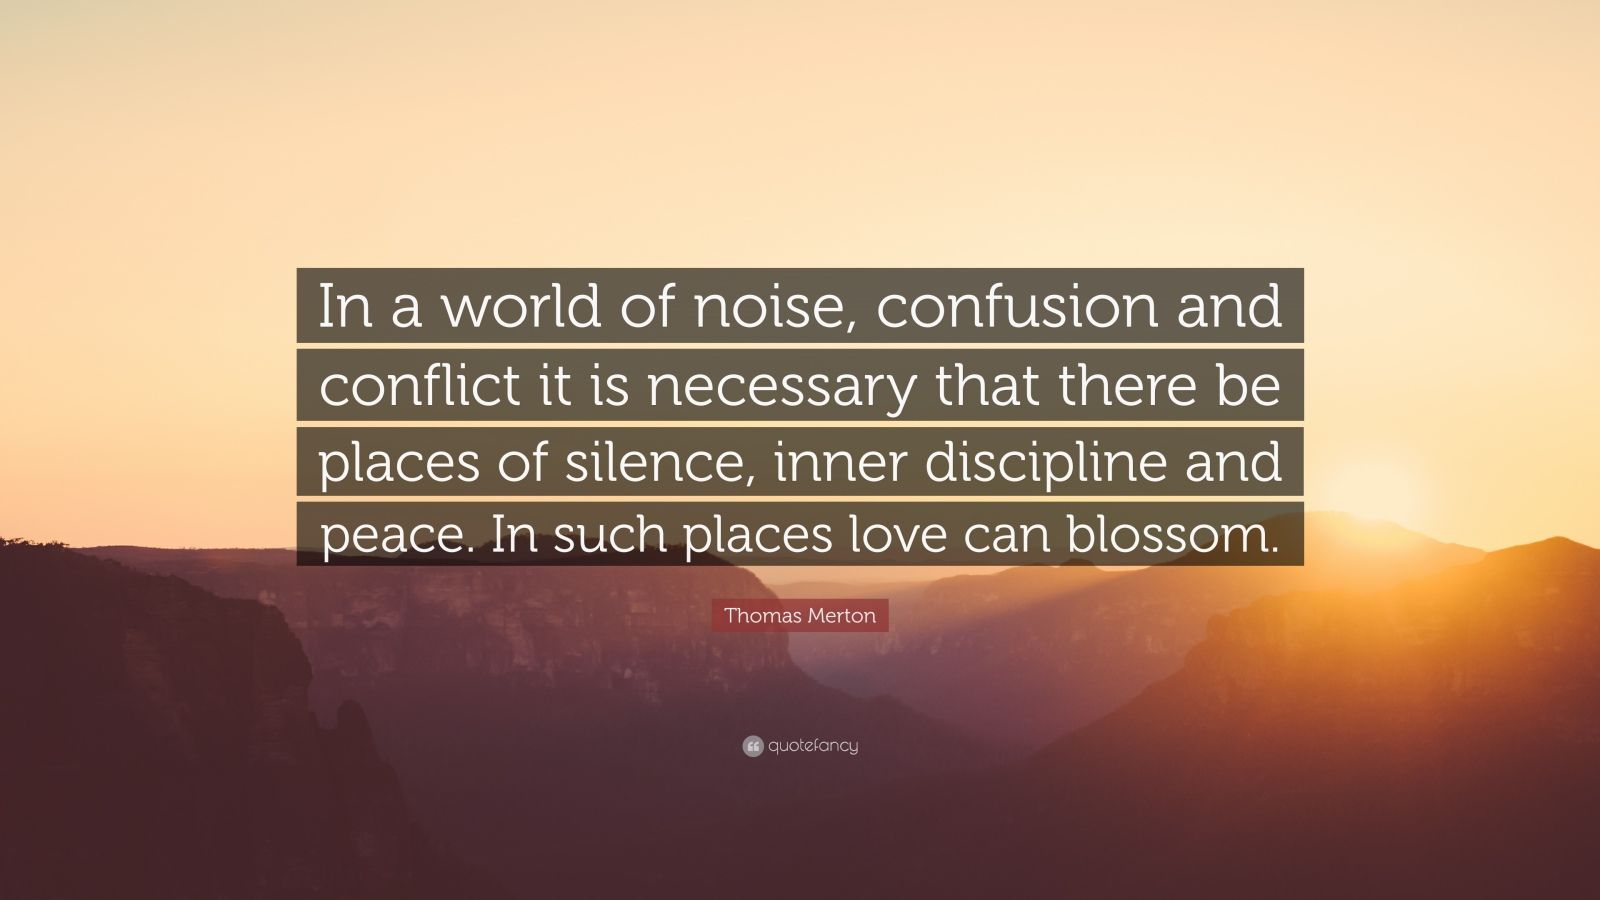 """Thomas Merton Quote: """"In a world of noise, confusion and conflict it is necessary that there be places of silence, inner discipline and peace. In such places love can blossom."""""""